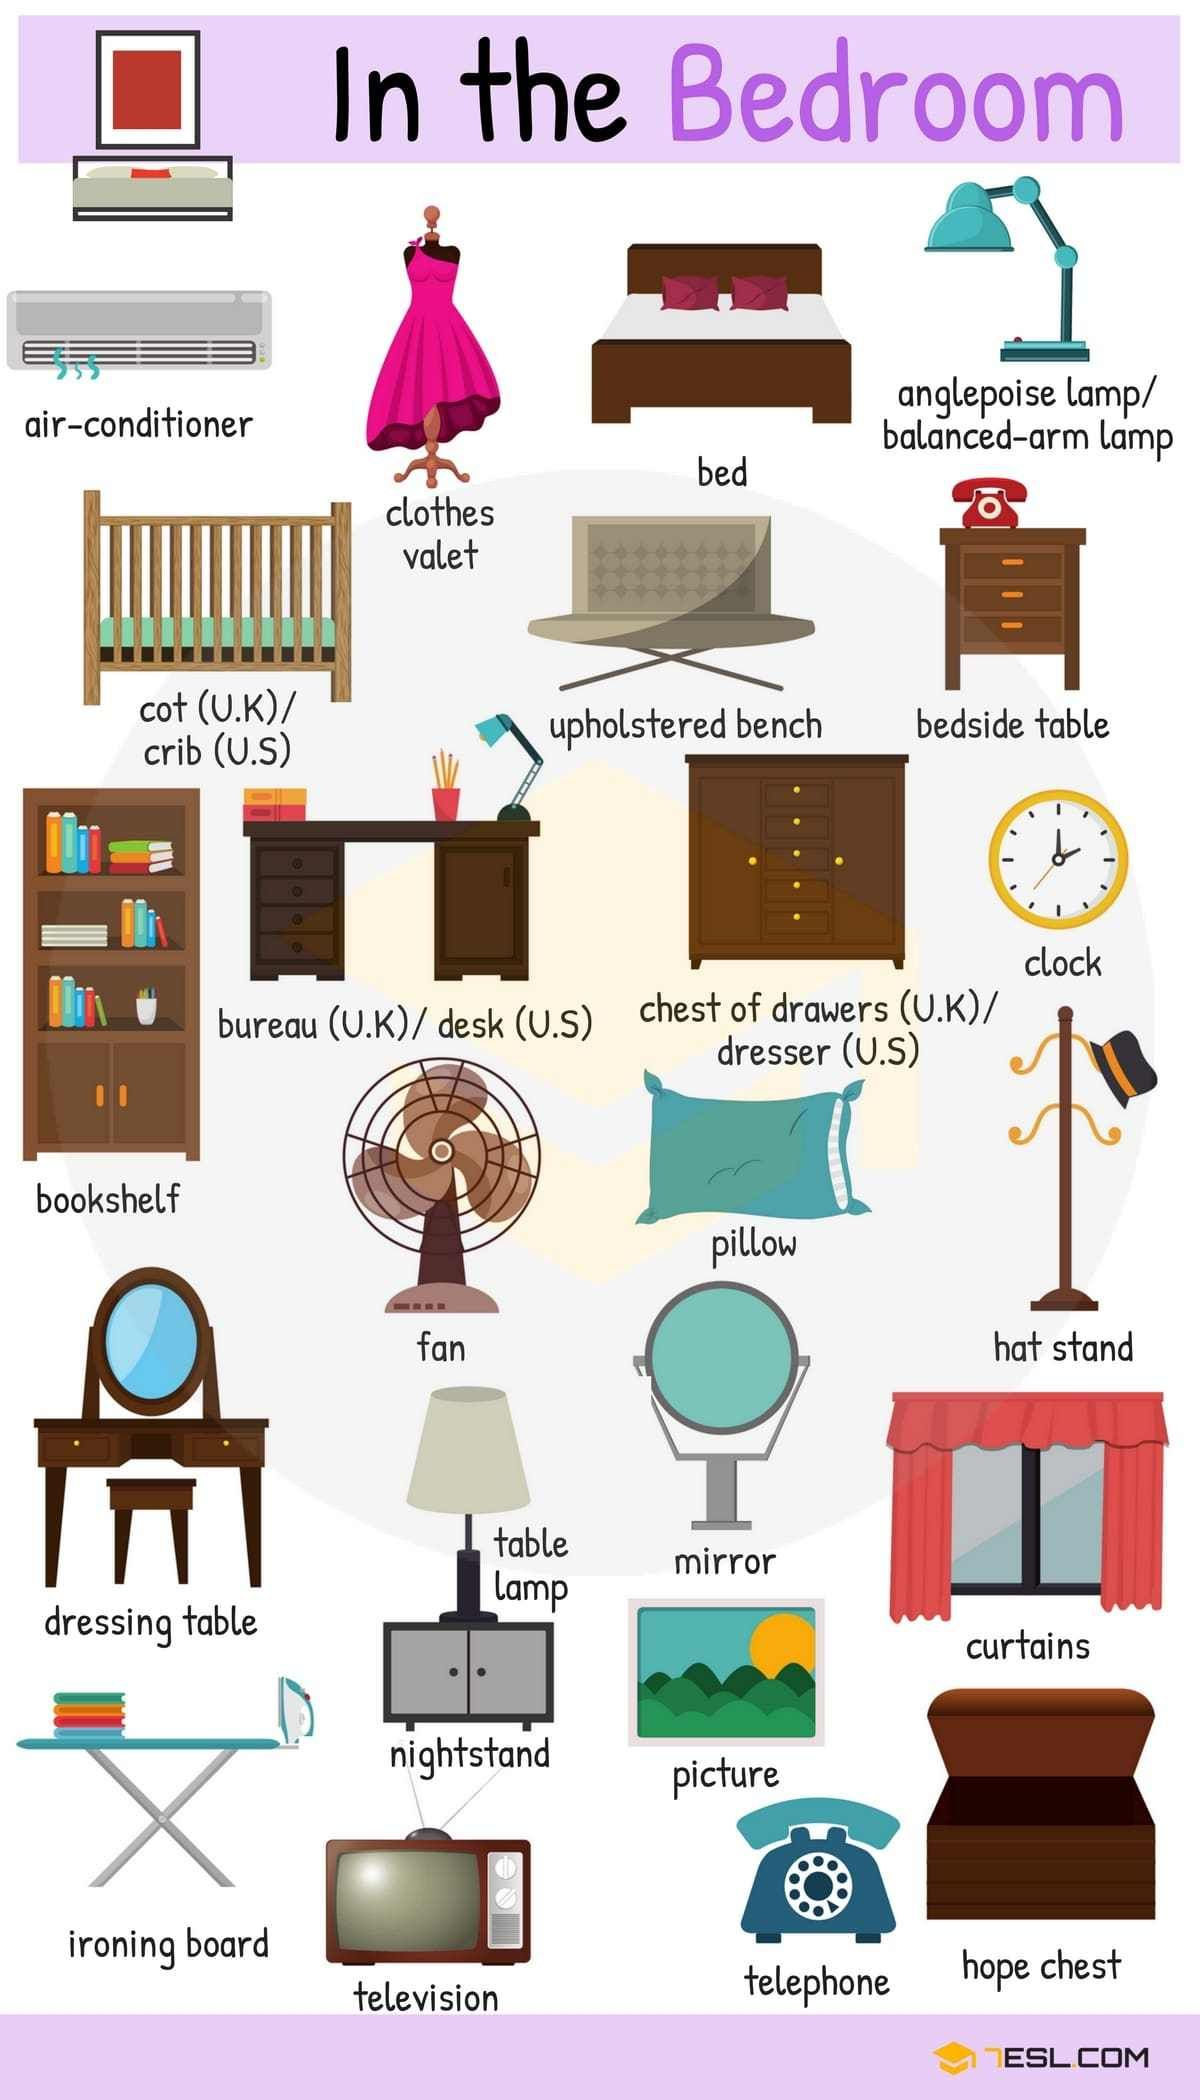 Rooms in a House Vocabulary in English English